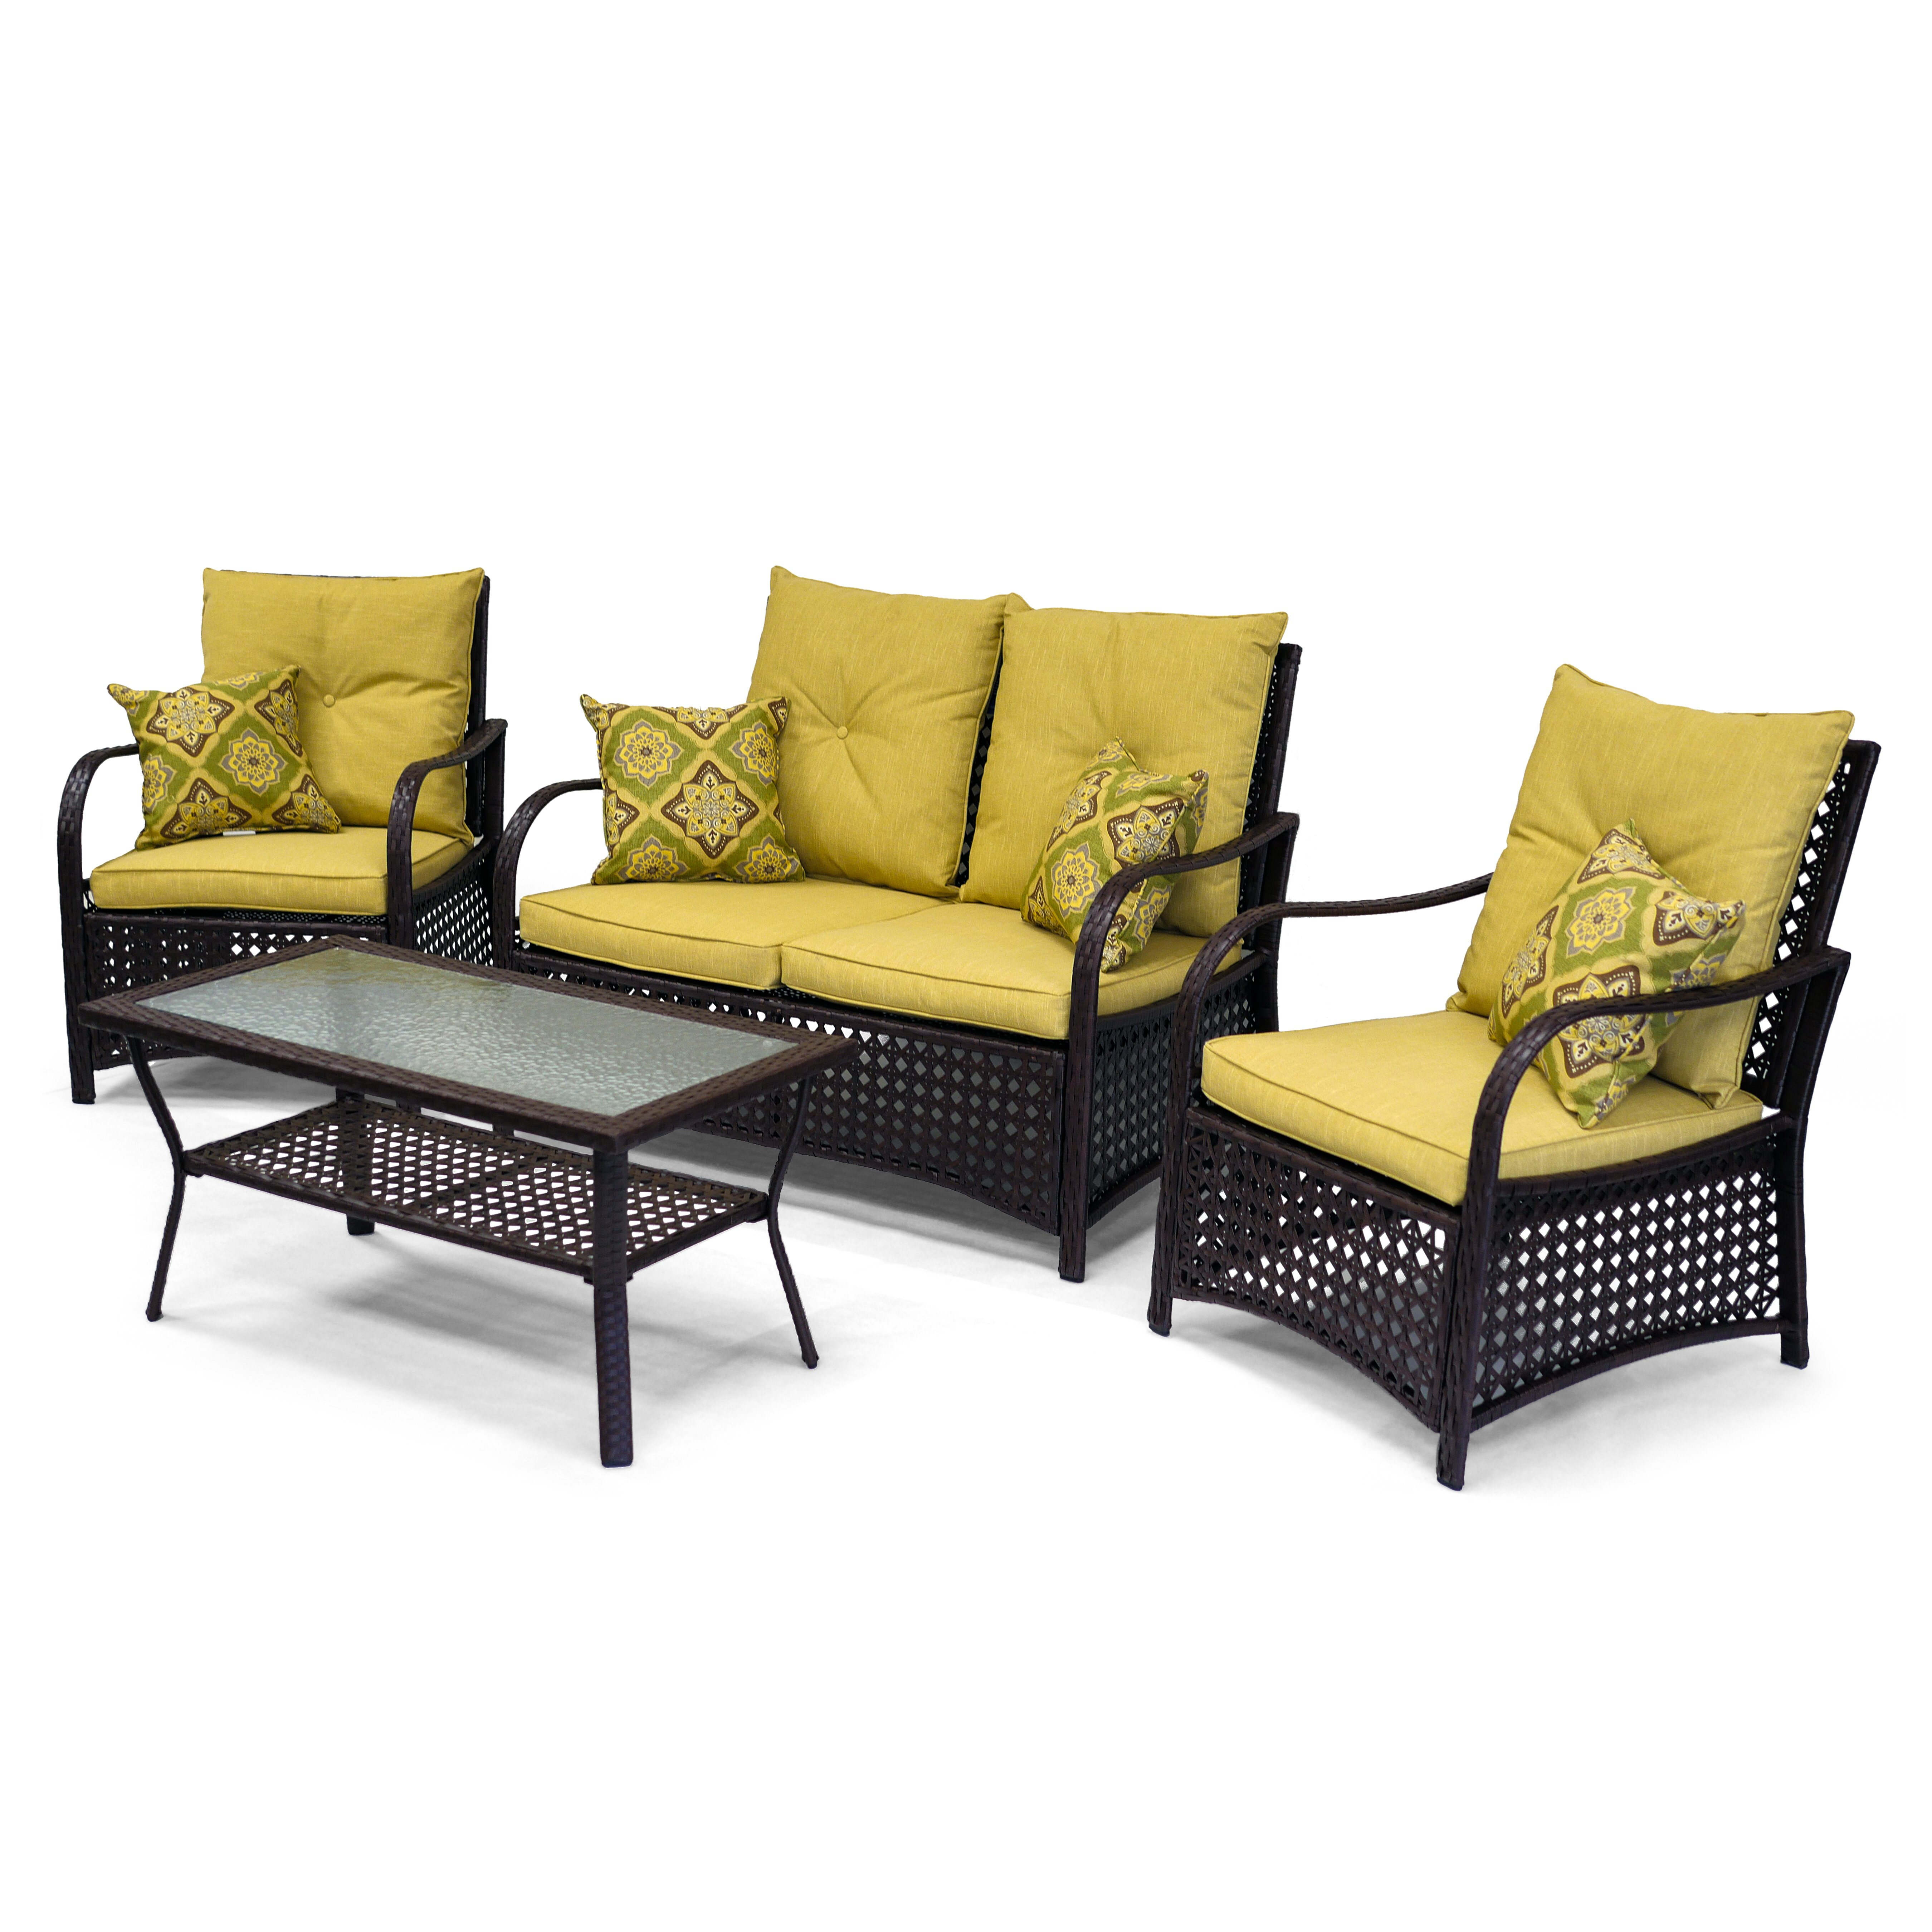 Sol siesta clubhouse 4 piece deep seating group reviews for Deep seating patio furniture